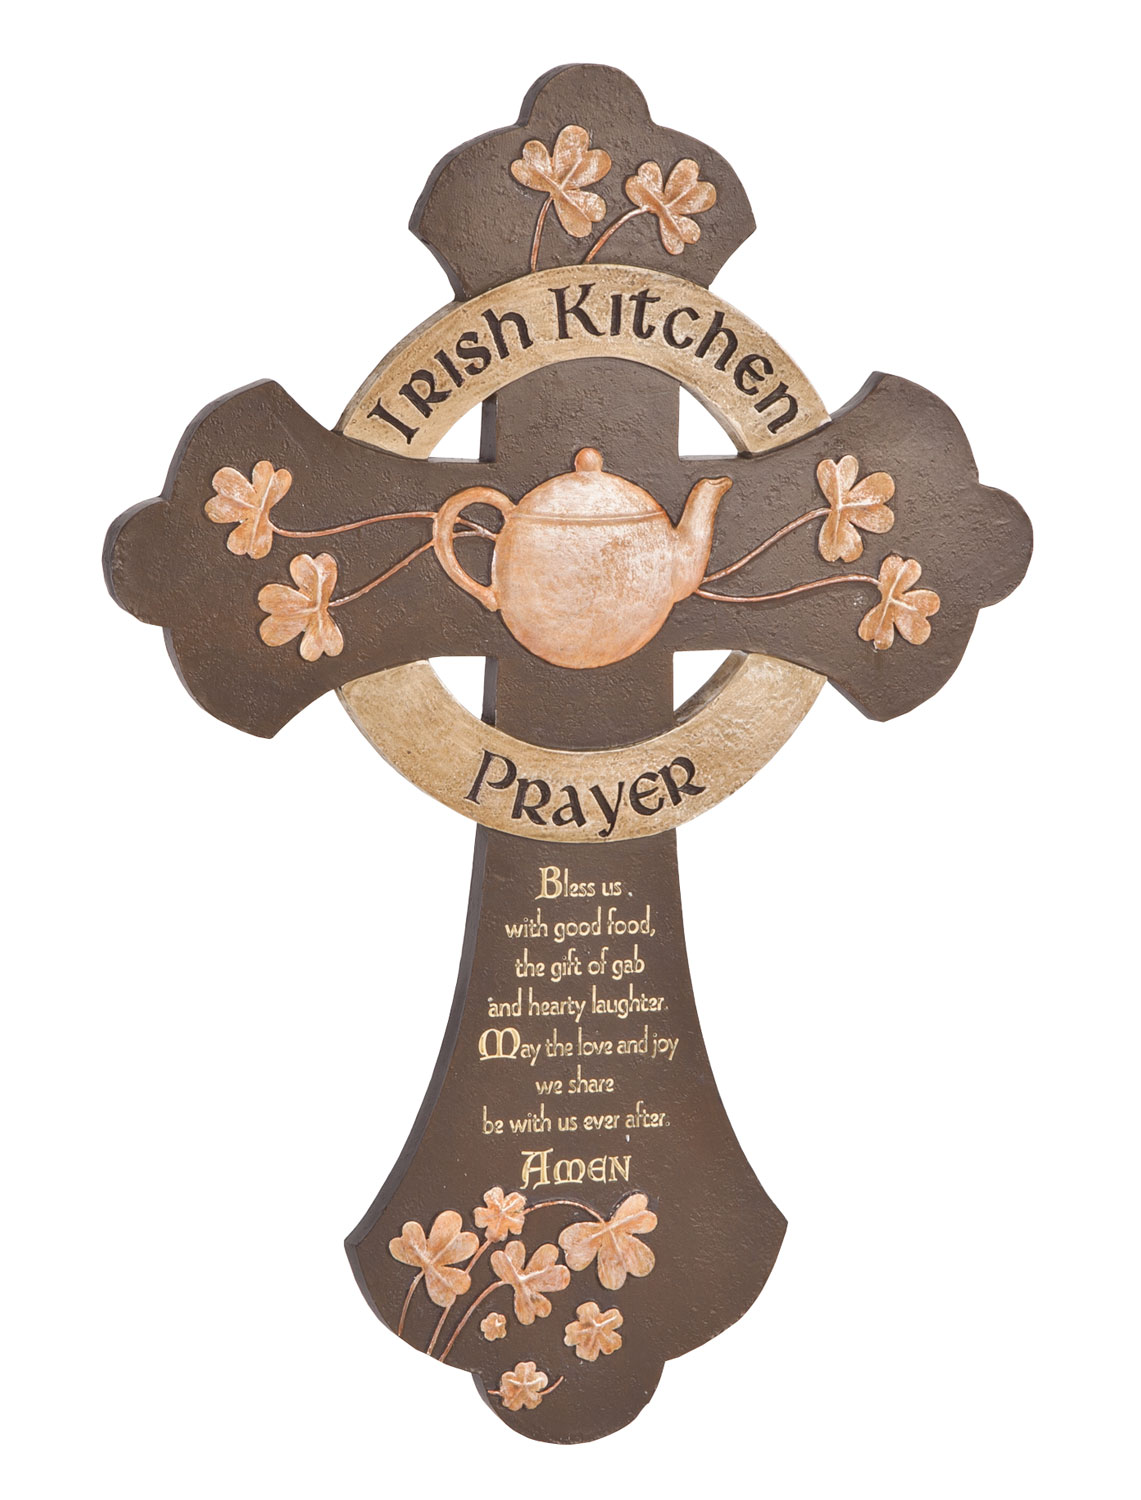 Irish Kitchen Prayer Cross Warming hearts with sweet Irish sentiment, this Irish kitchen prayer cross reads:  Bless us with good food, the gift of gab and hearty laughter. May the love and joy we share be with us ever after. Amen.  Crafted of resin with painted metallic accents, the decorative cross is perfect for you or a lucky Irish friend--a keepsake gift for weddings, housewarmings, birthdays, St. Patrick's Day and more! Wall cross includes sawtooth hanger. 12 1/8  L x 8 1/2  W.